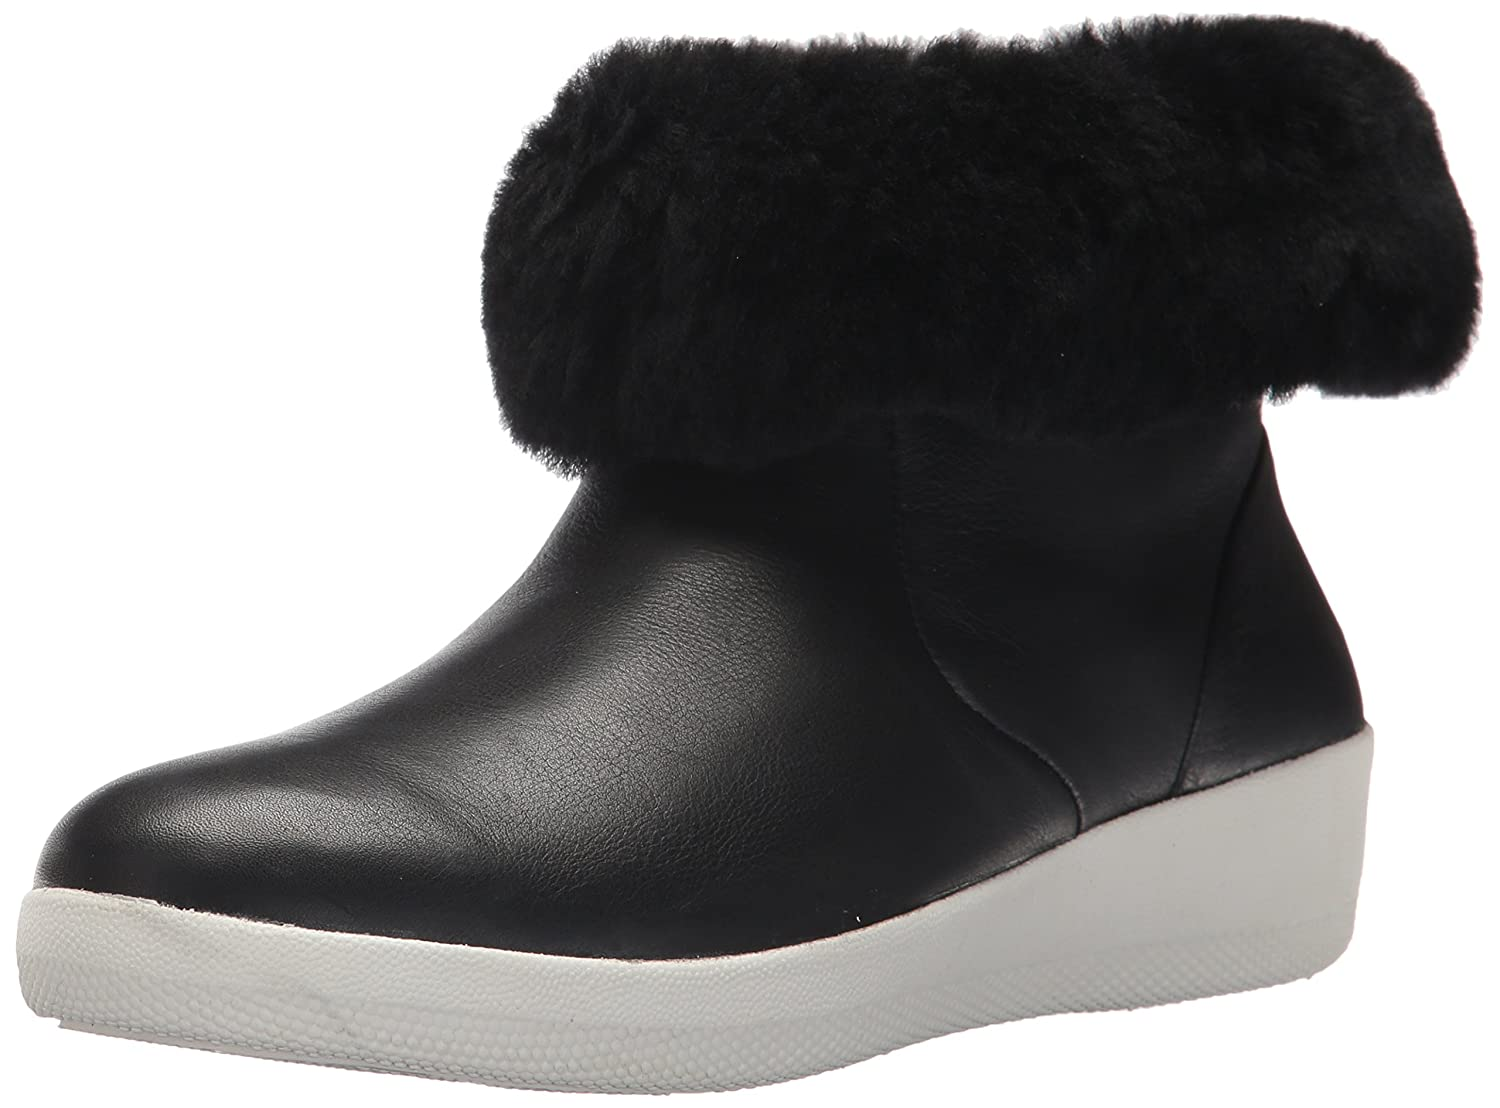 FitFlop Women's Skatebootie Leather Shearling Ankle Boot B0764G7MVQ 7 B(M) US|Black